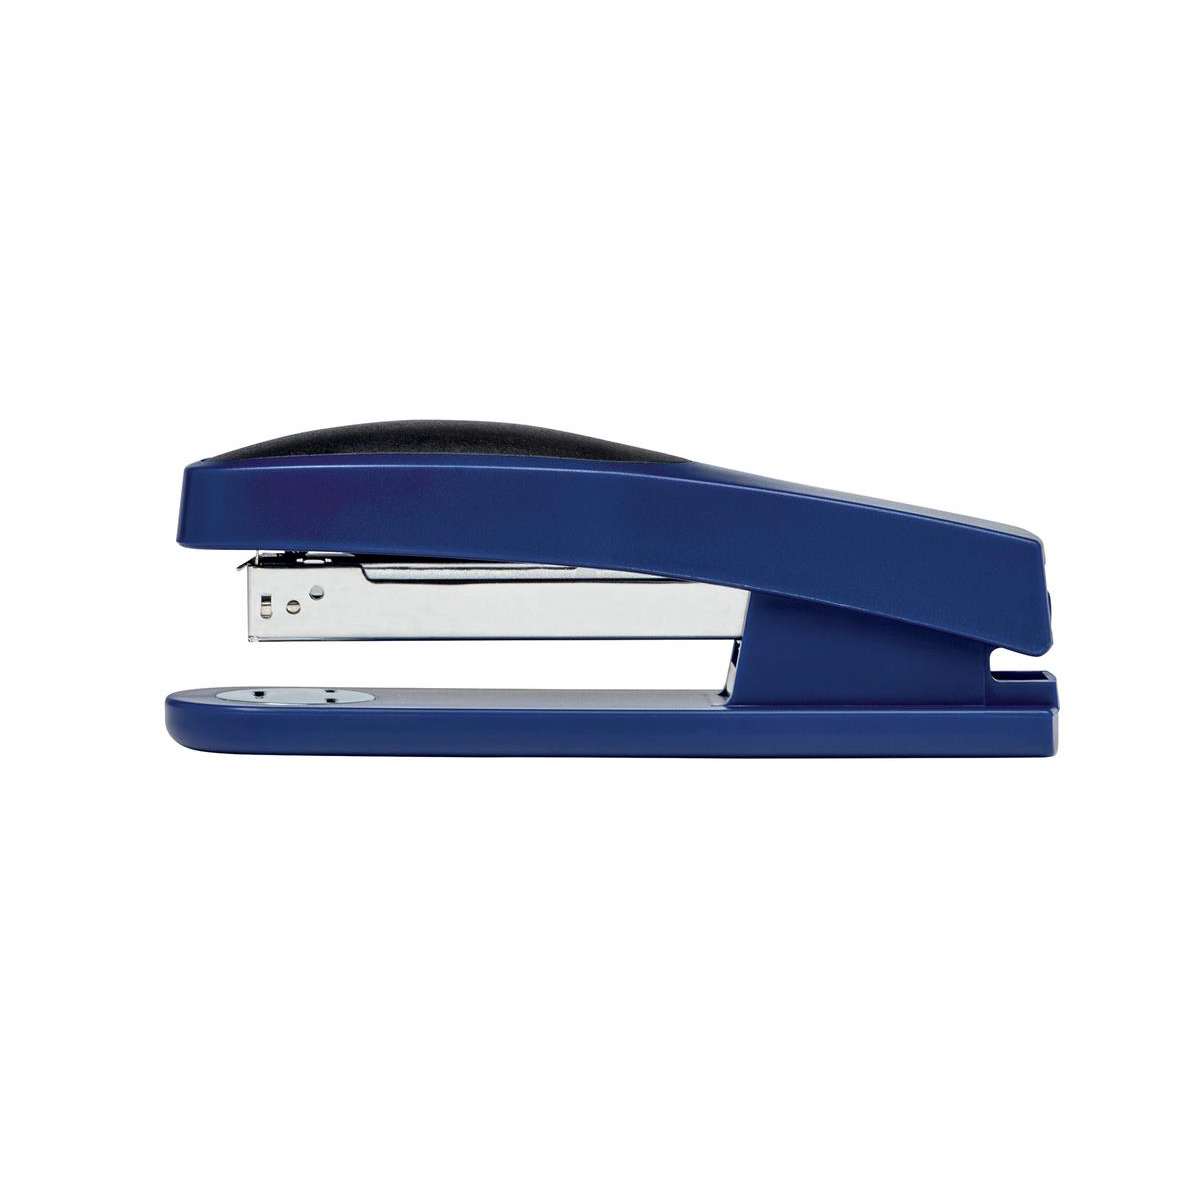 Desktop Staplers 5 Star Office Stapler Full Strip Rubber Body Capacity 25 Sheets Blue